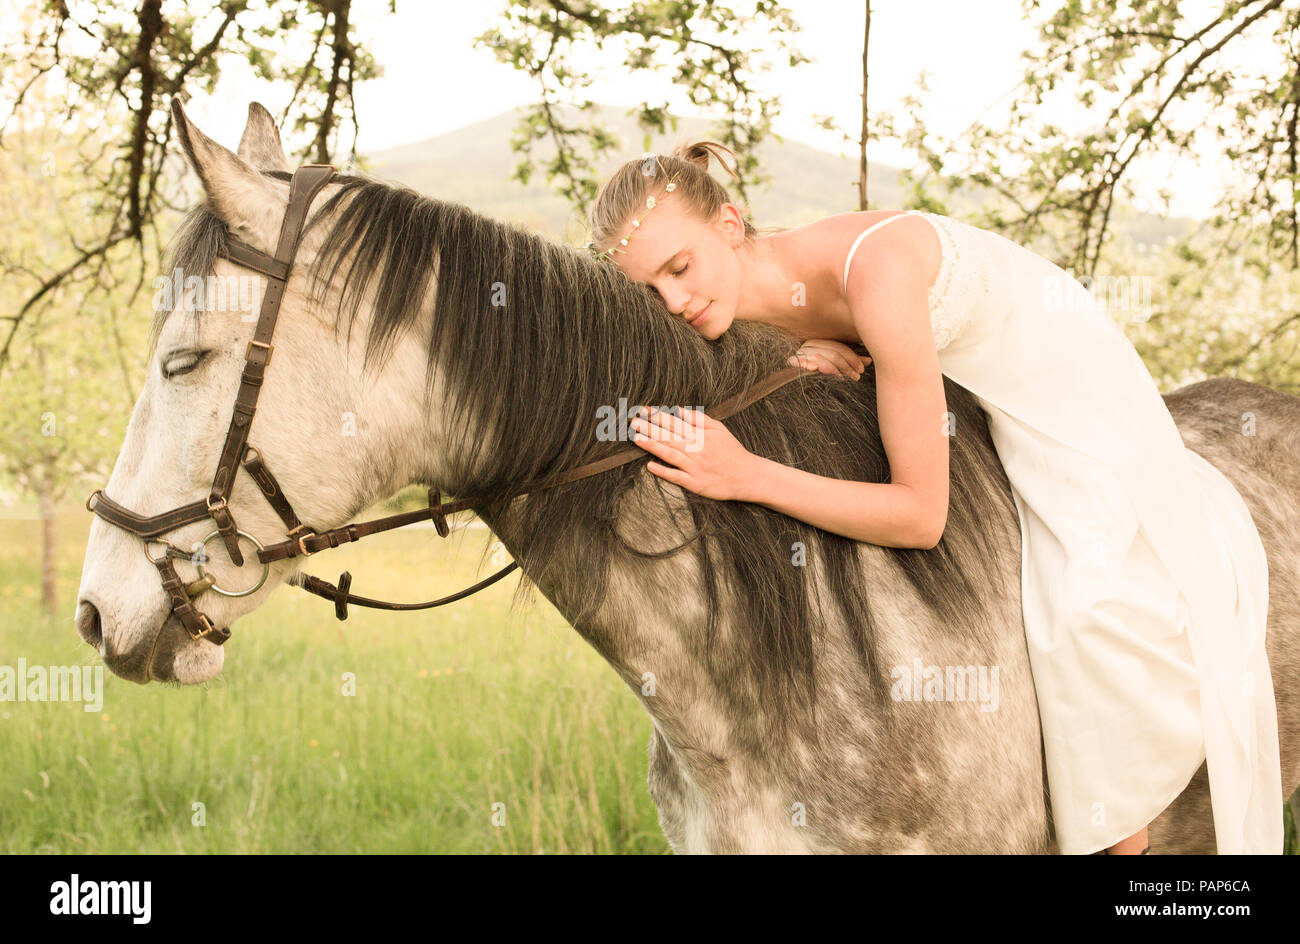 Woman Horse Riding Dress High Resolution Stock Photography And Images Alamy